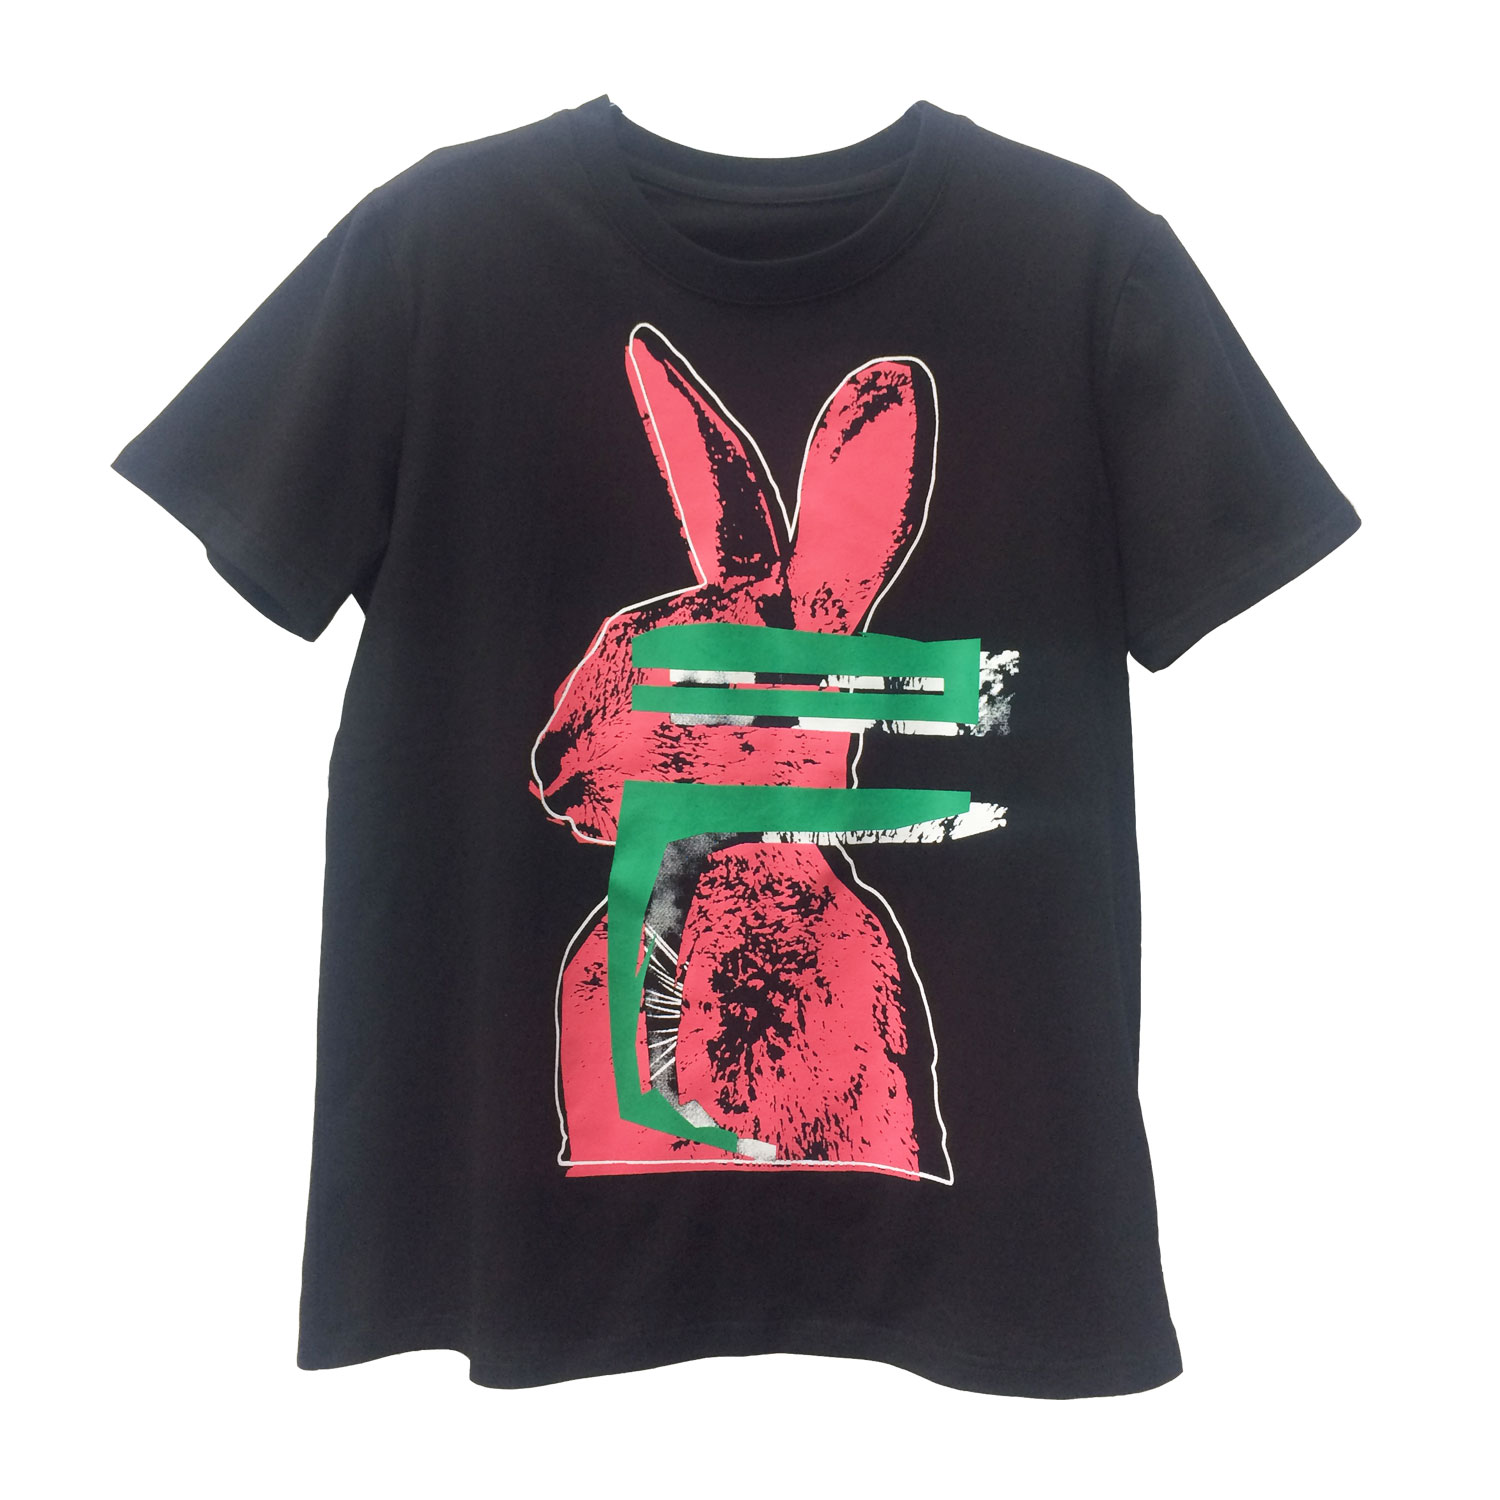 ningbo fuzhi garments women's black tee rabbit print short sleeve round neck t-shirt